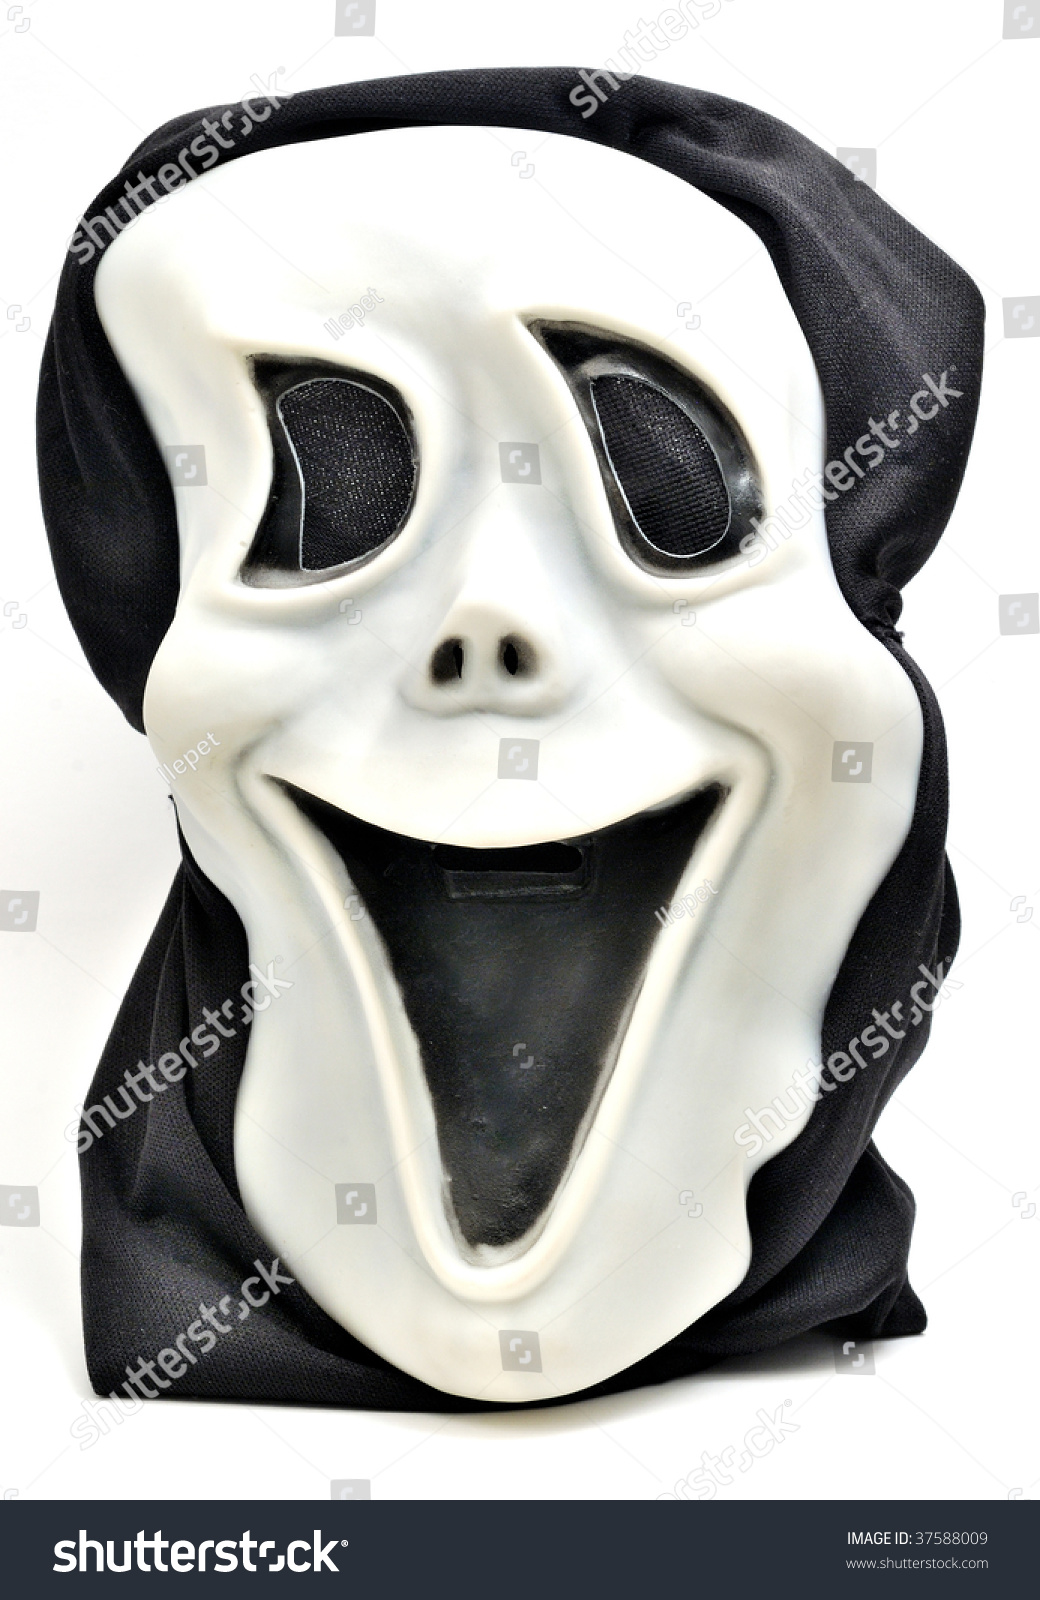 halloween mask isolated on white background stock photo (edit now